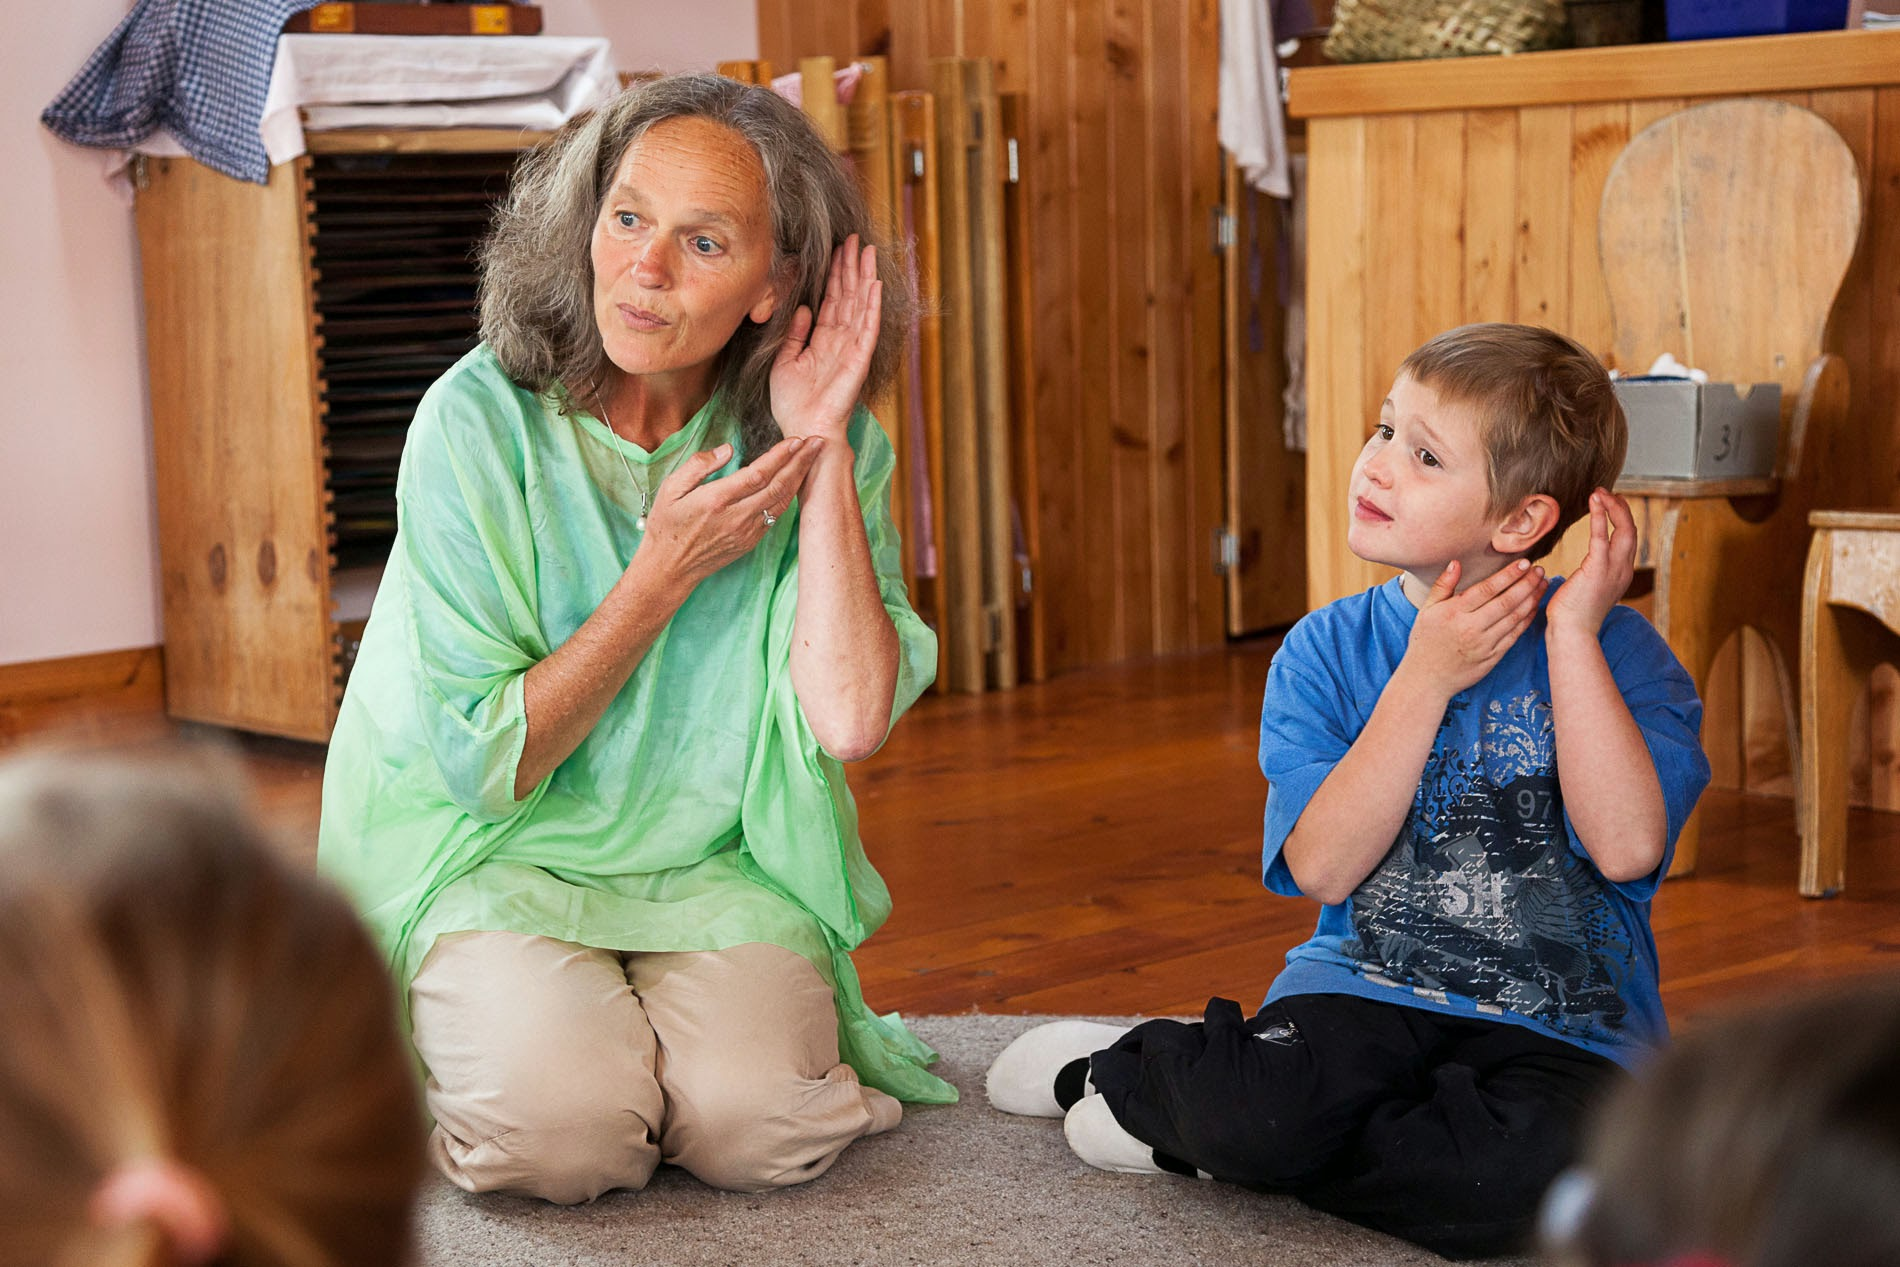 Waldorf schools believe that the experience of listening is imperative for children to develop before moving onto more formal music learning experiences.